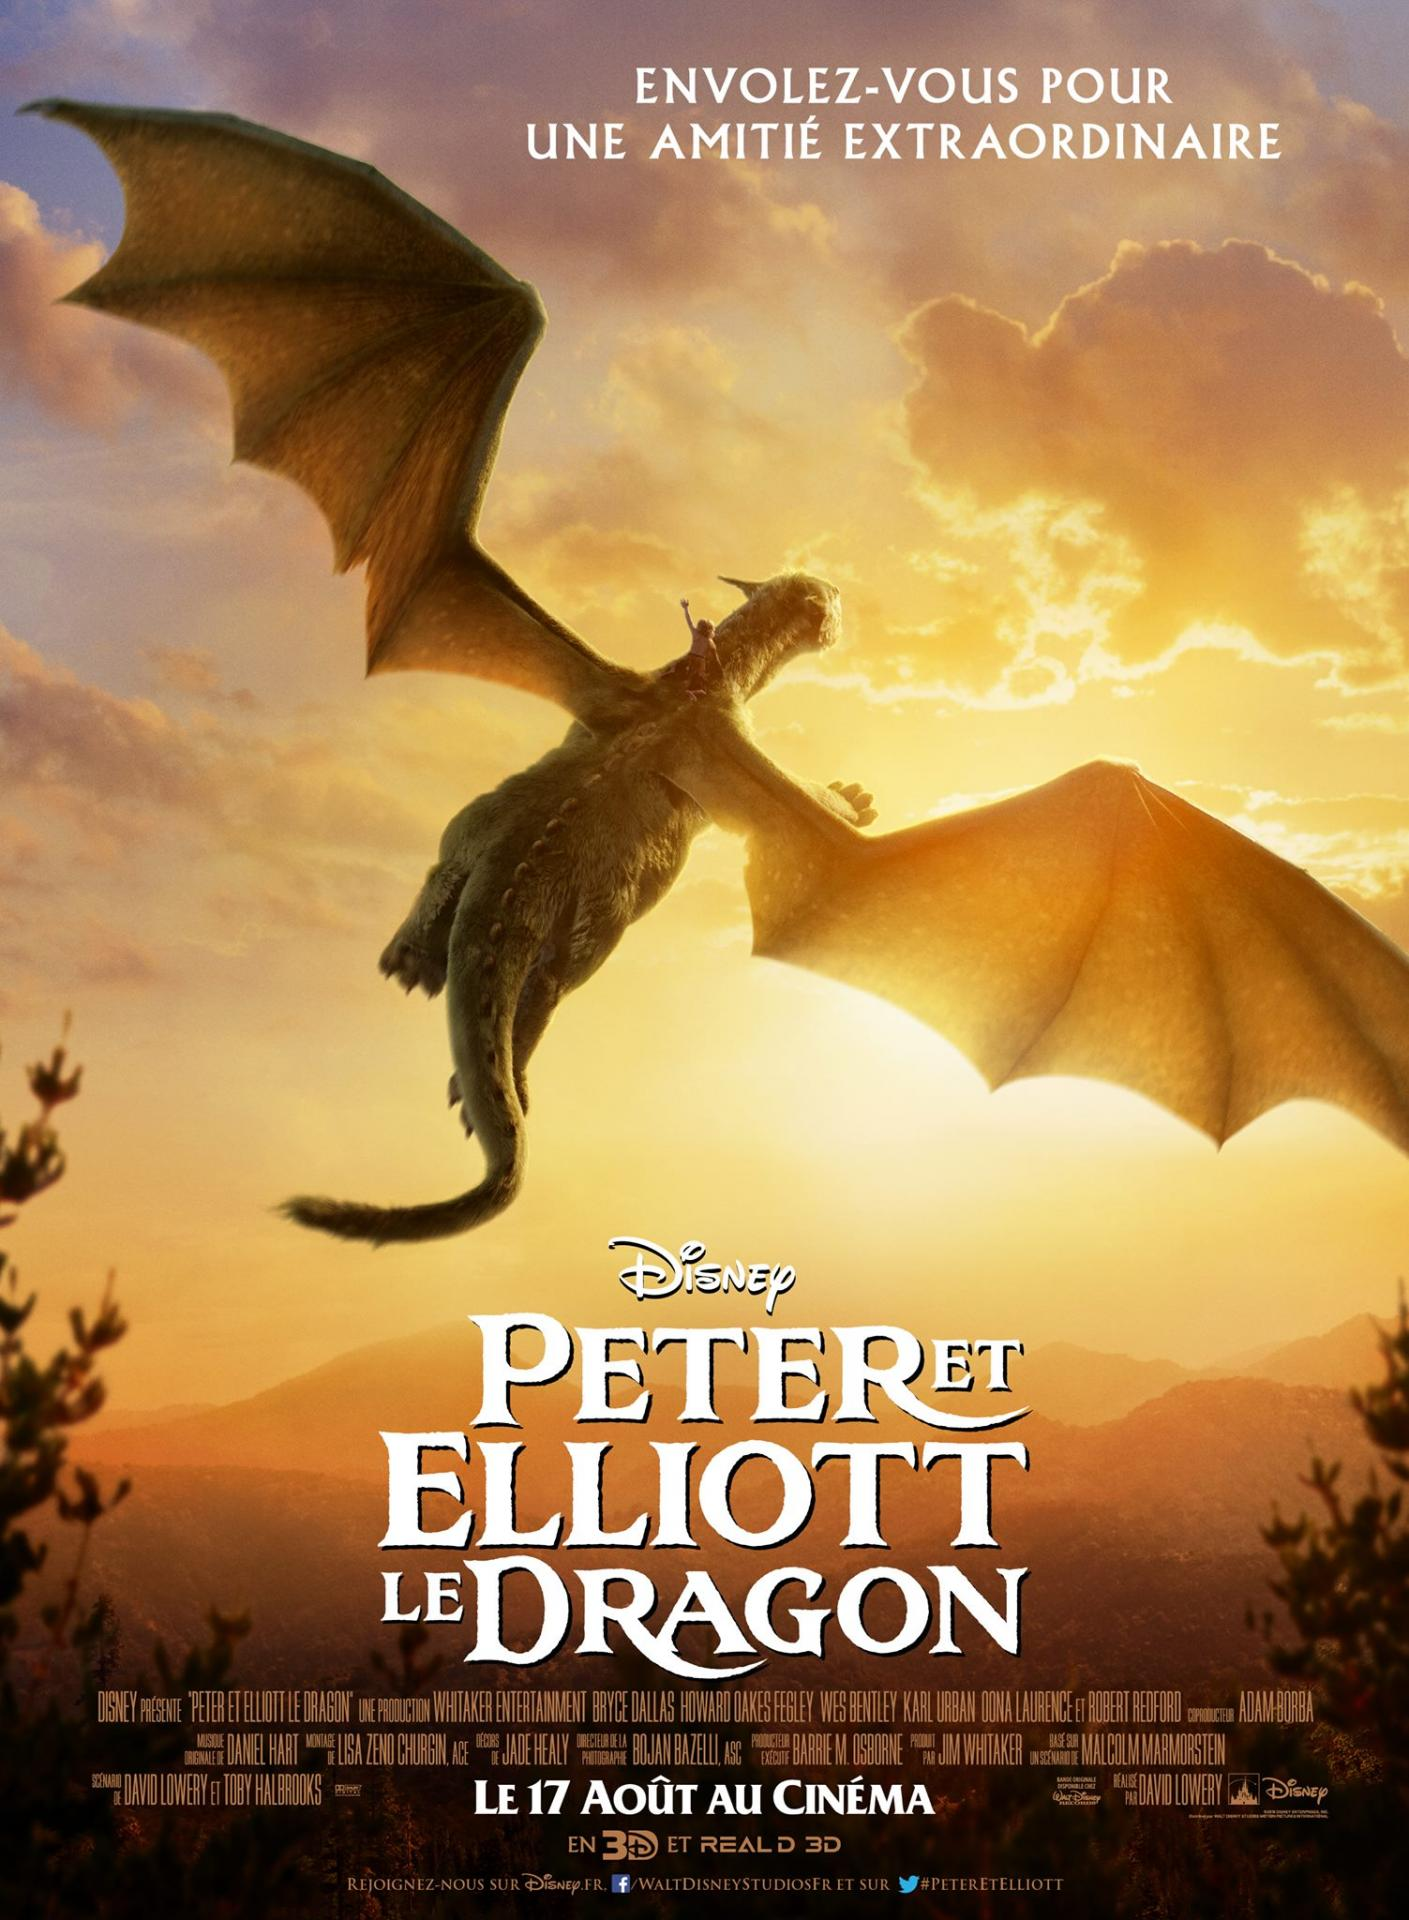 Affiche francaise peter elliott dragon film 2016 03